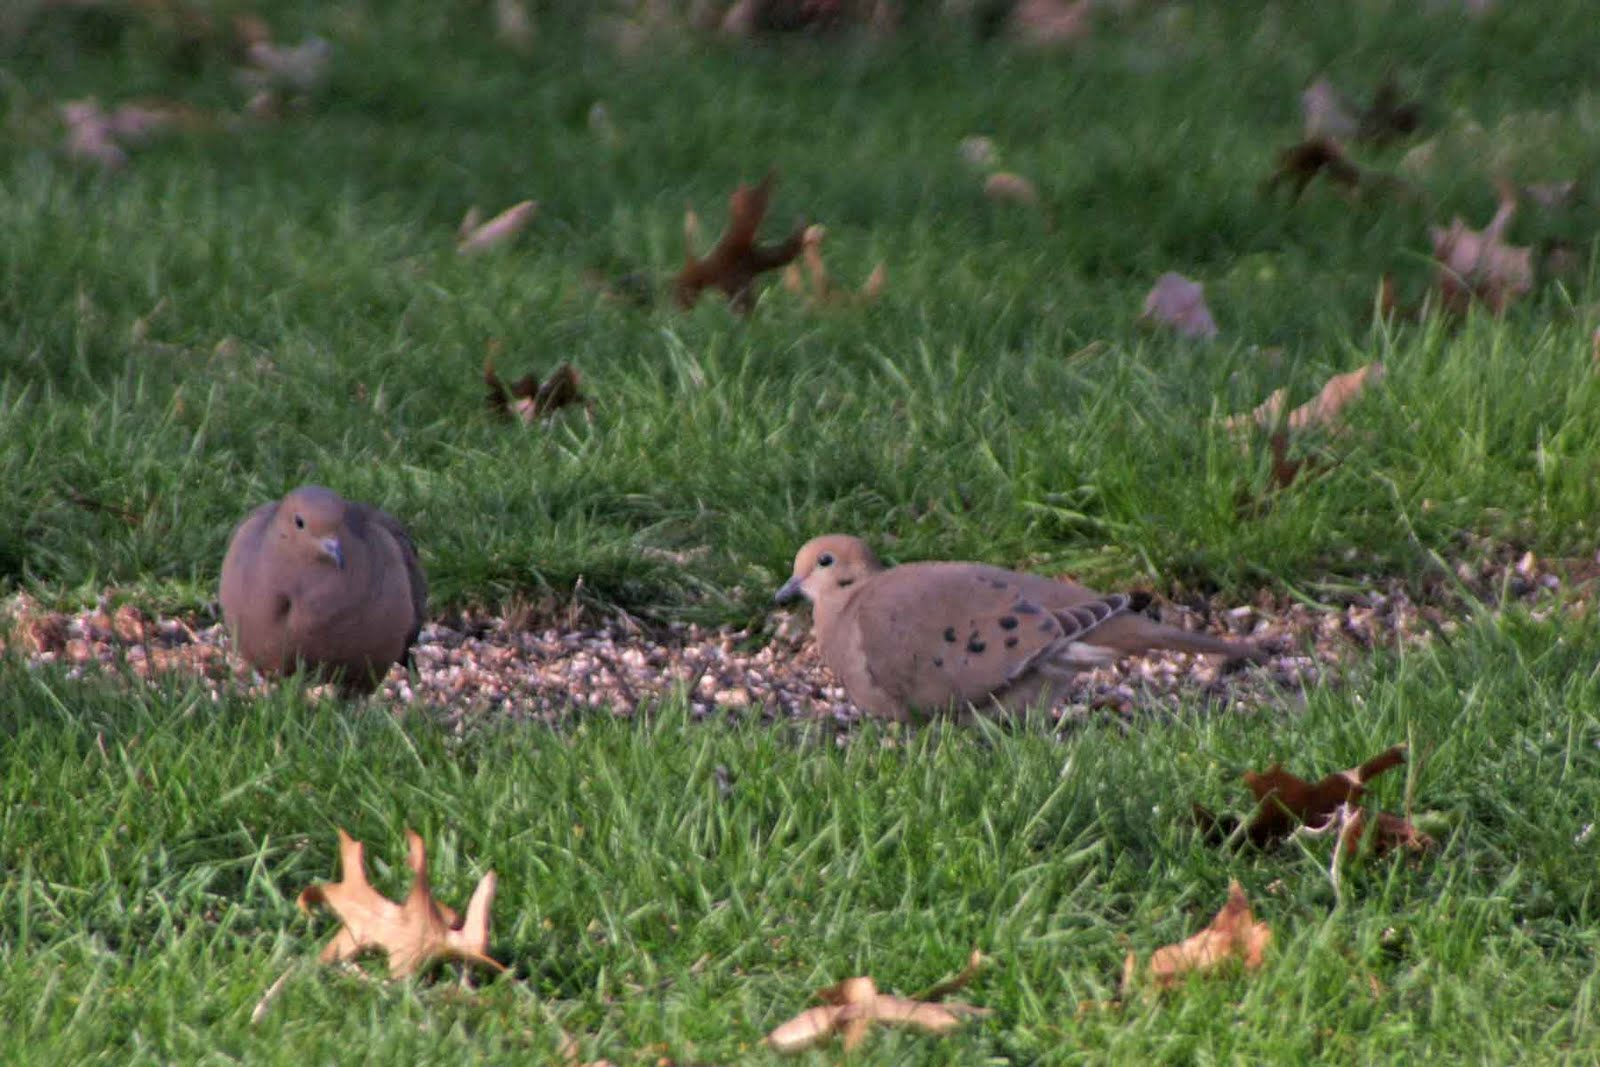 doves are one of the most prolific backyard birds